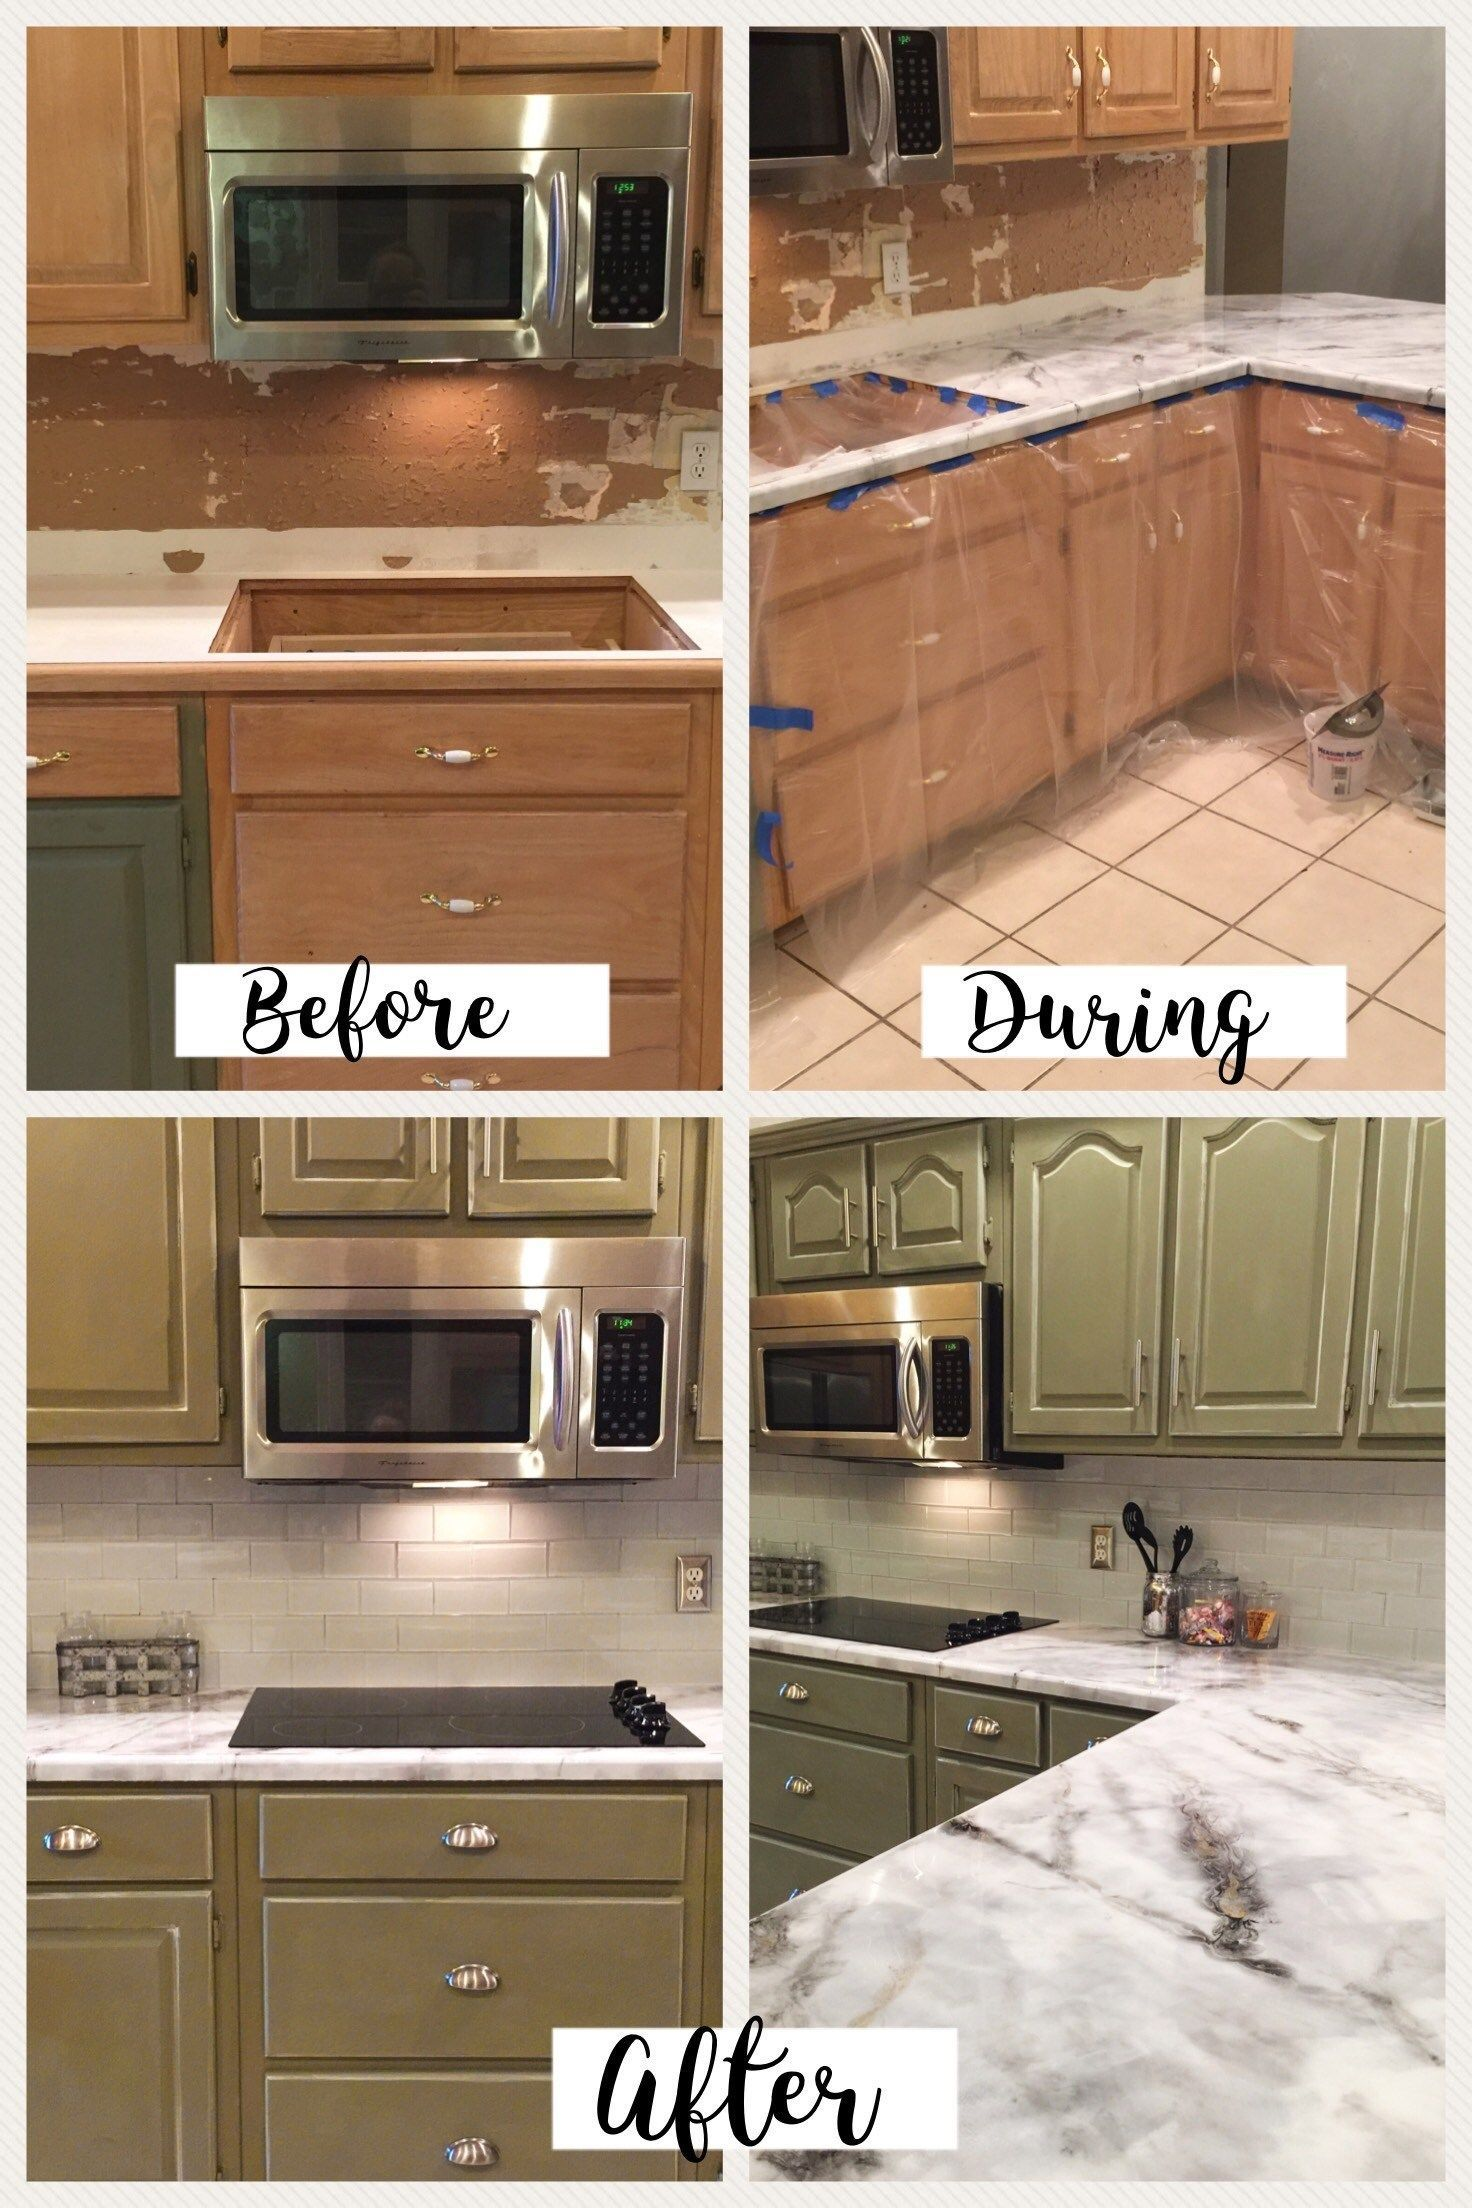 How To Resurface Kitchen Countertops I Love Working With Epoxy This Is A Guide On Diy Kitchen Countertops Kitchen Countertops Painting Kitchen Countertops